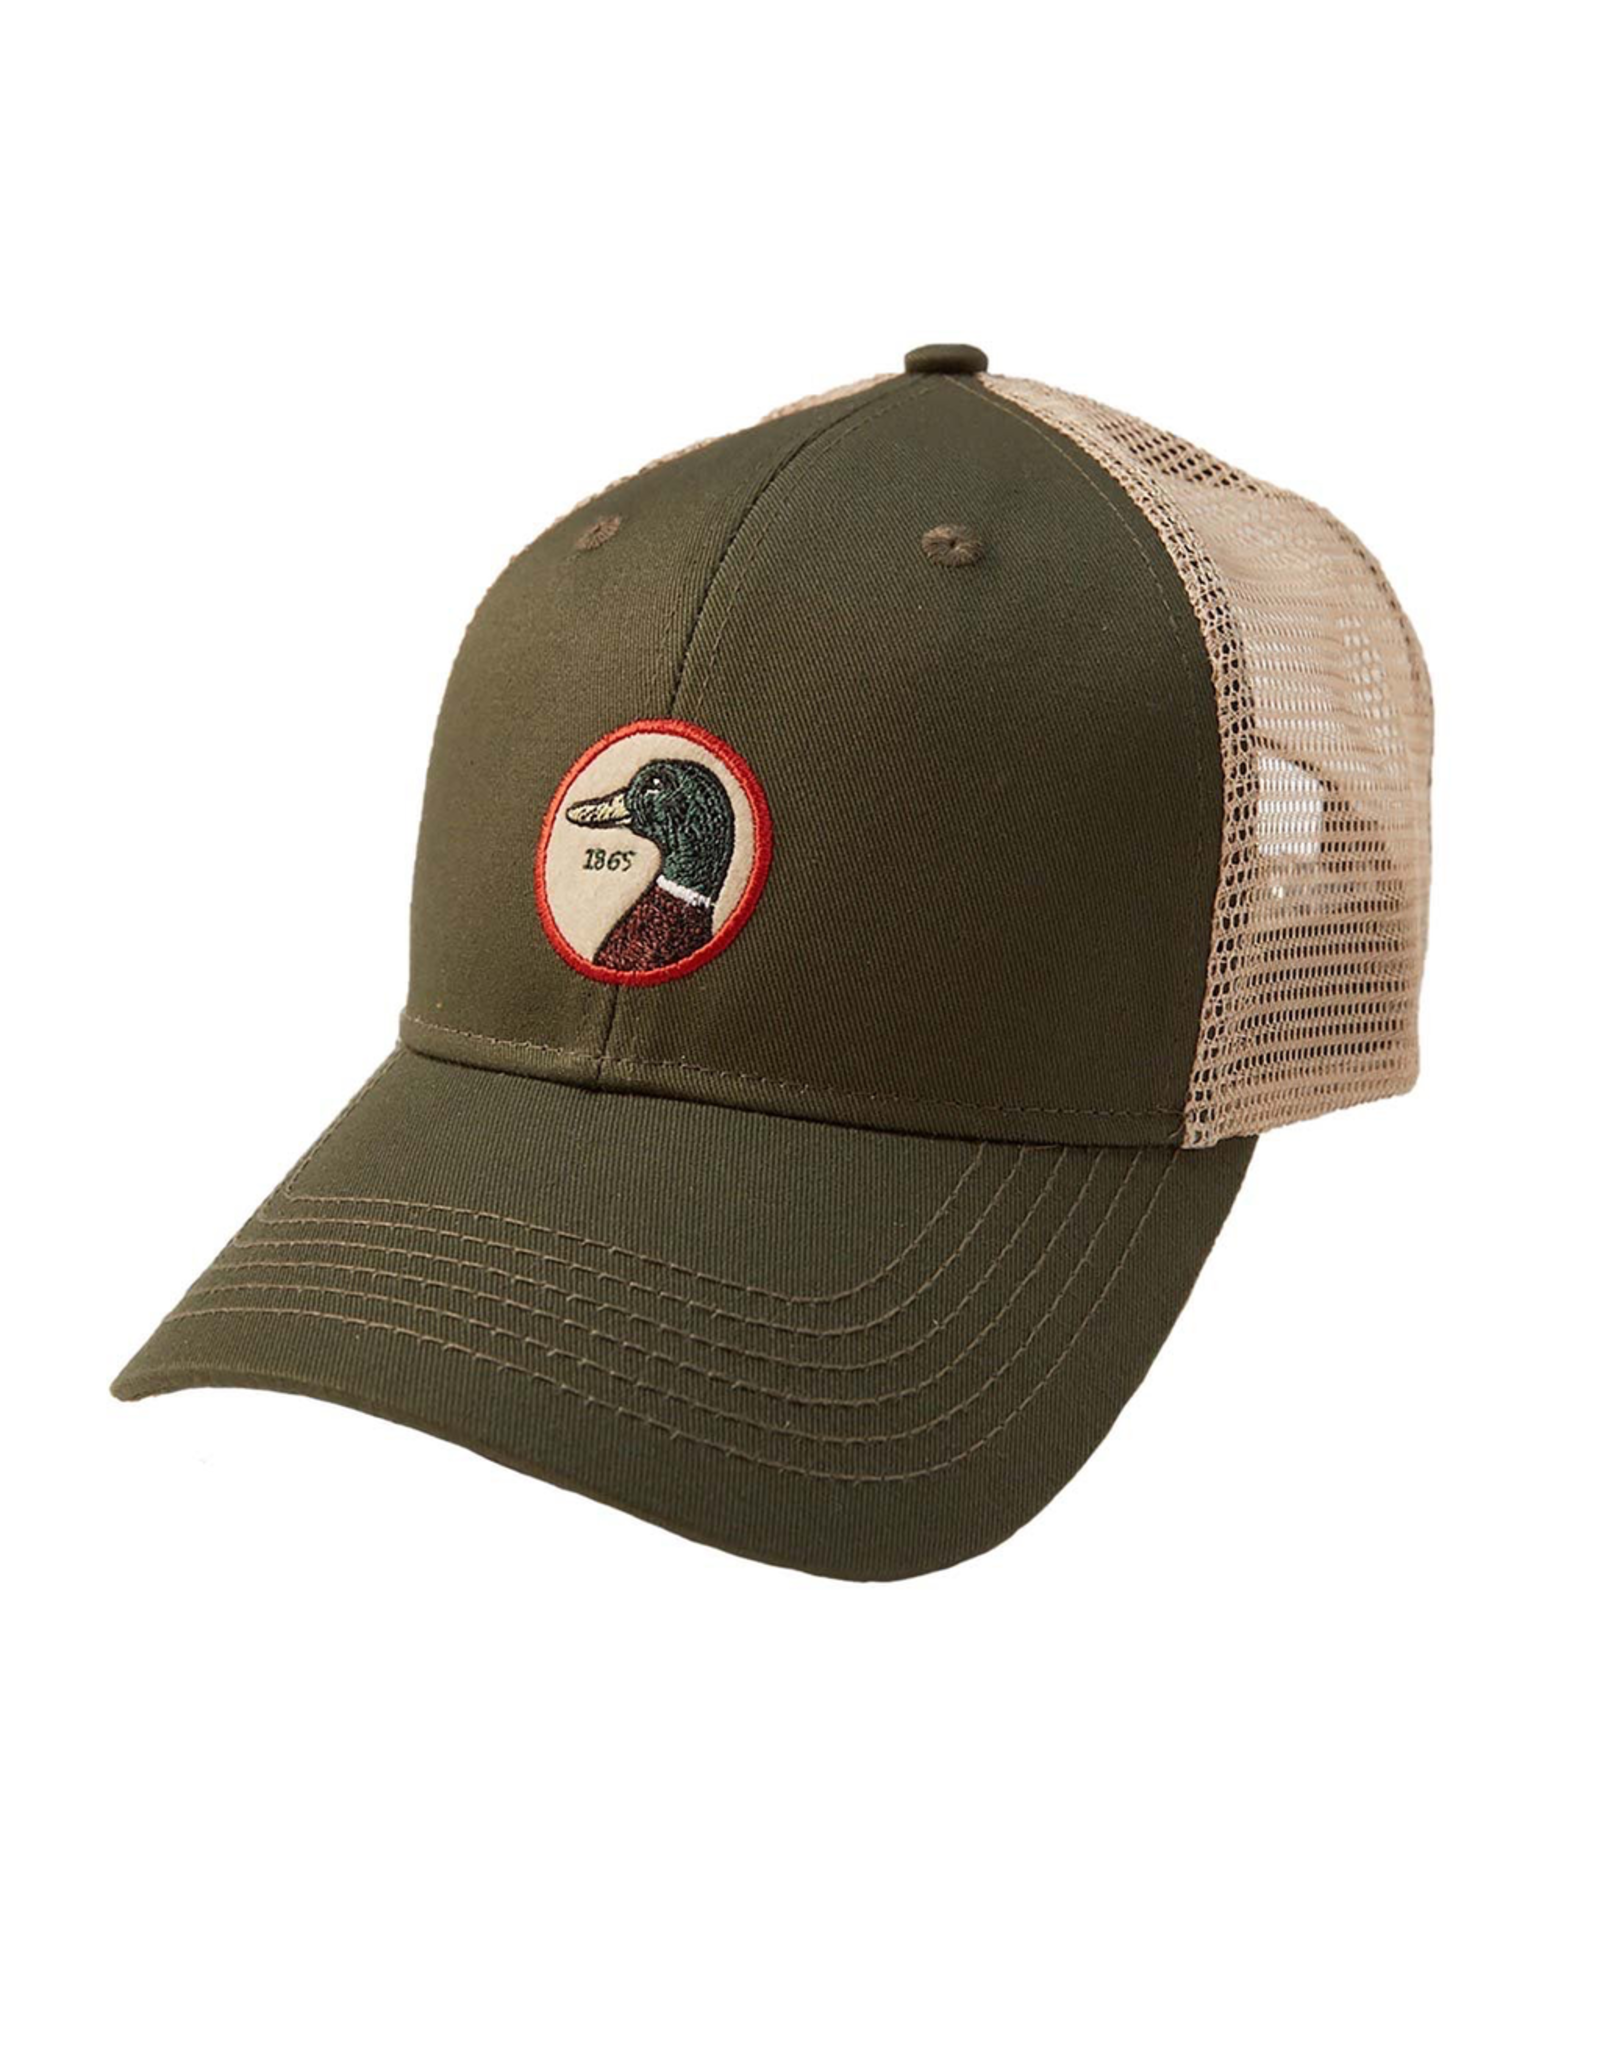 Hats DUCKHEAD D41007 CIRCLE PATCH TRUCKER HAT, OSFM, PINE 391